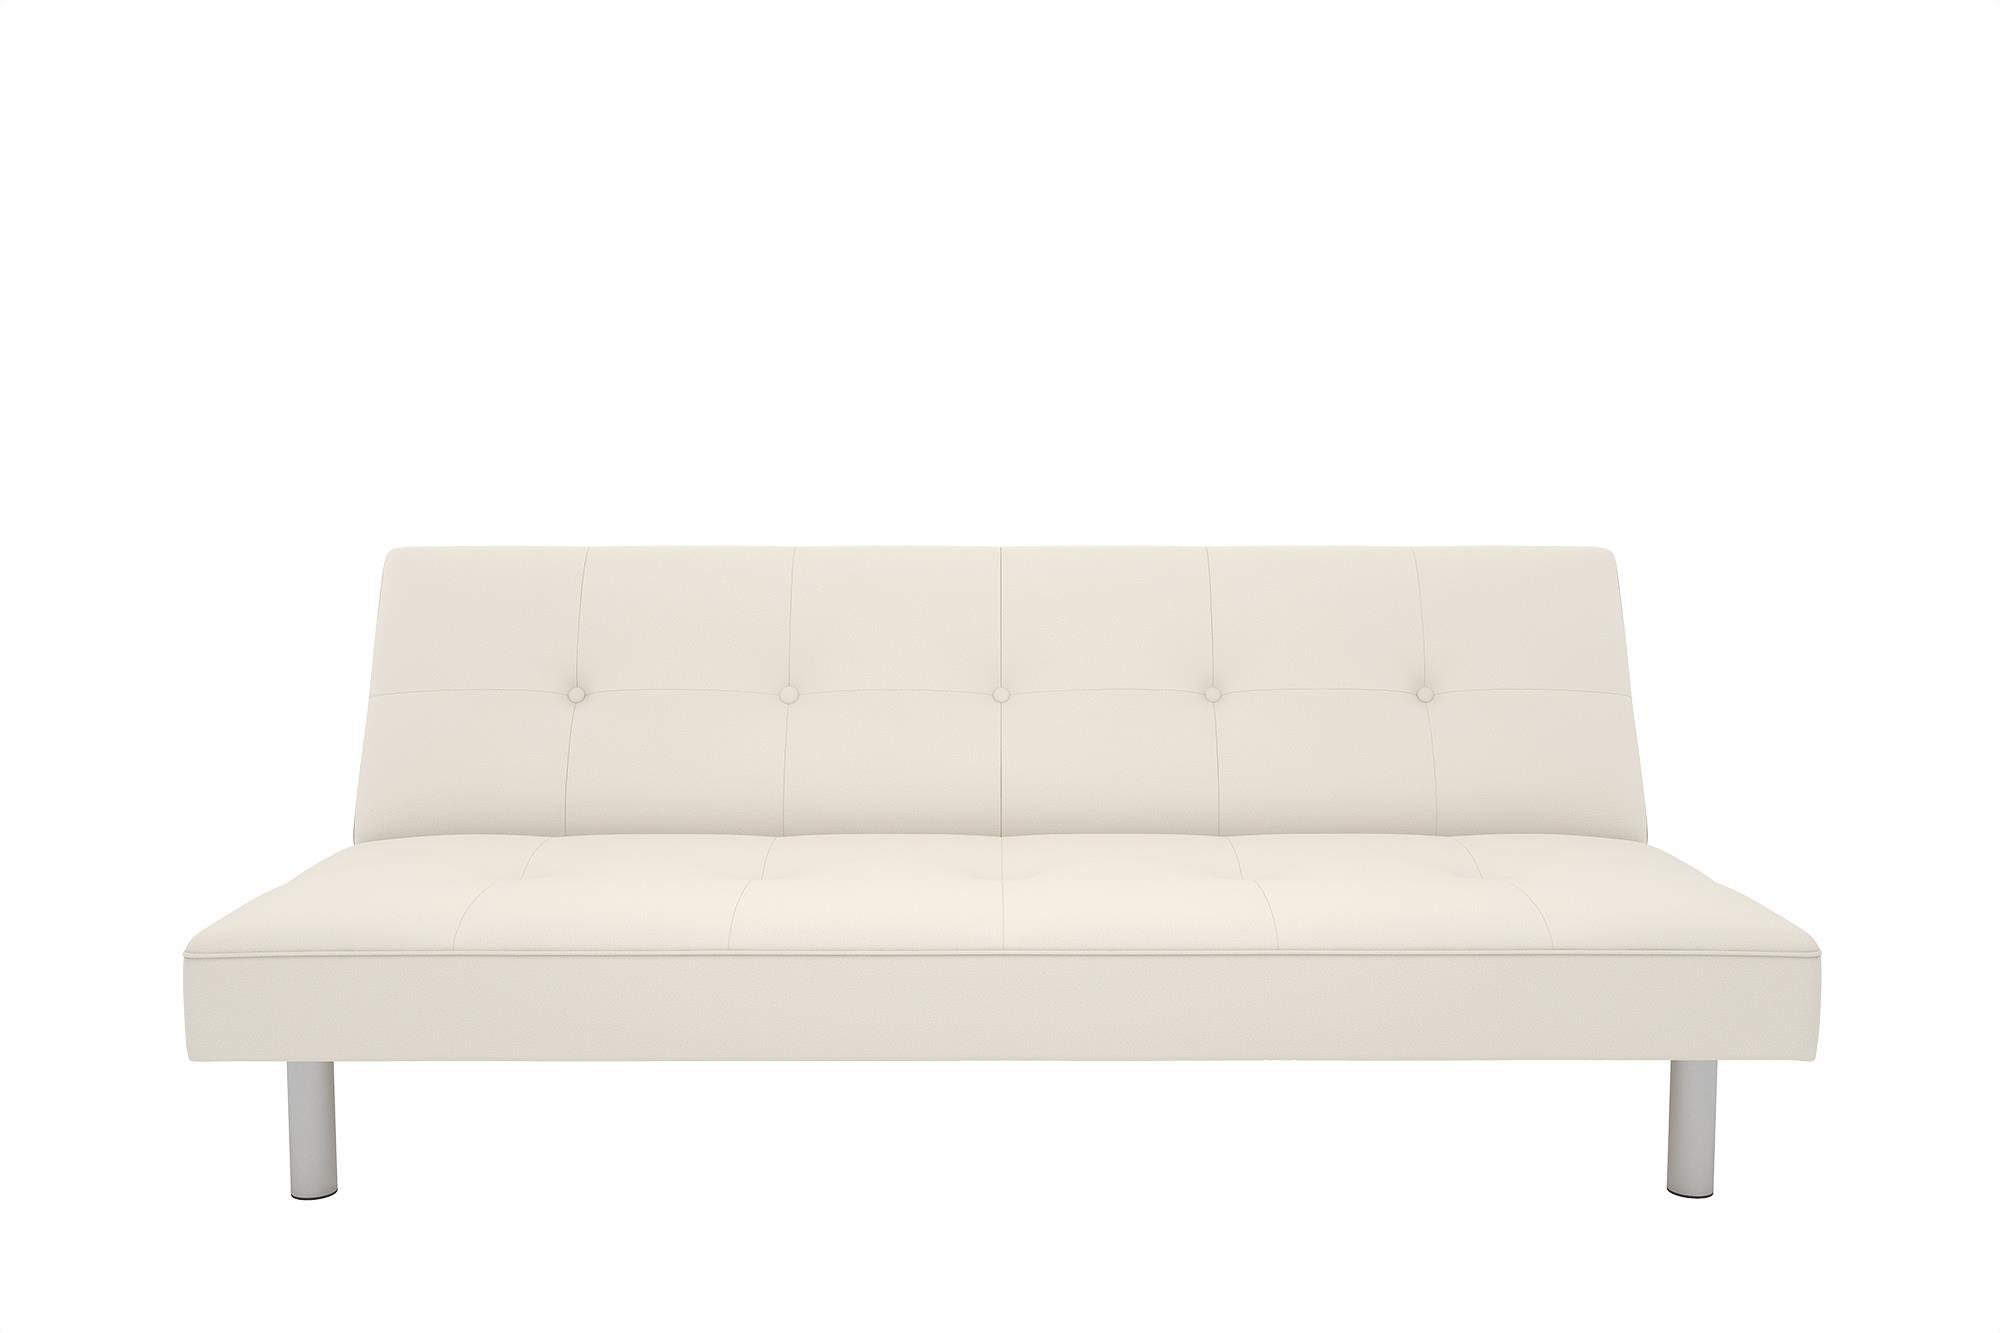 DHP Nola Futon Couch with Tufted Faux Leather Upholstery, Modern Style, White Faux Leather by DHP (Image #4)